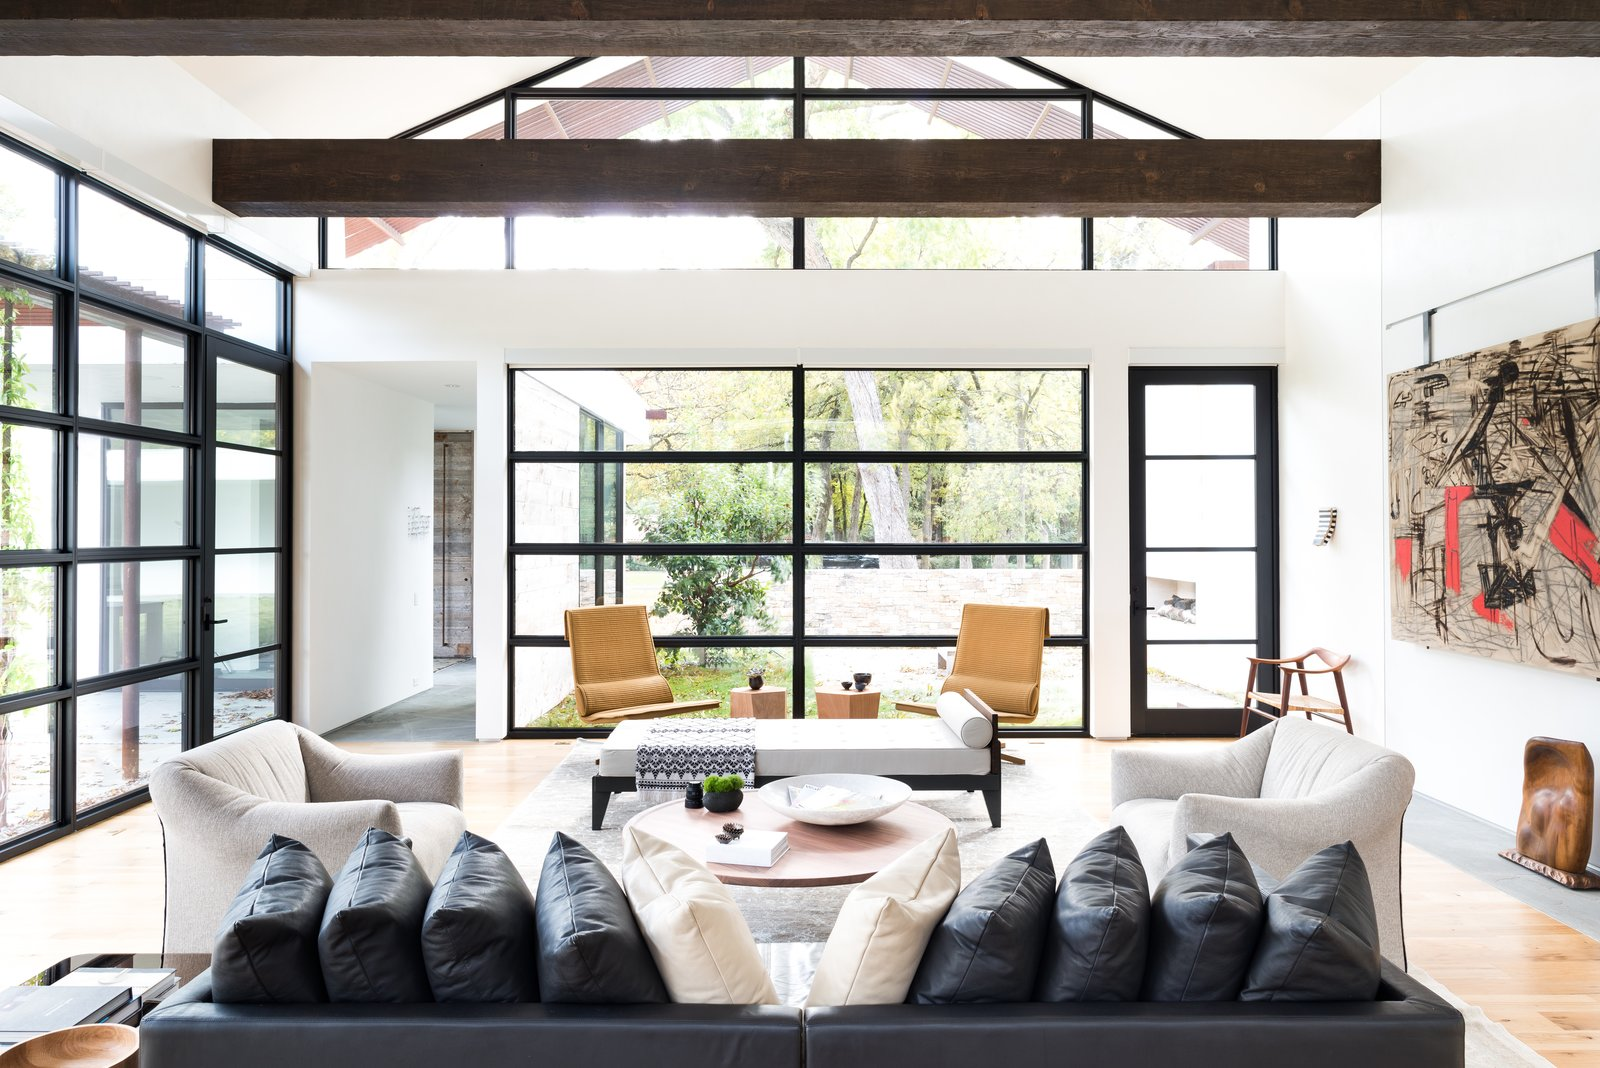 """For this project, the husband loved ultra-modern design, while the wife leaned towards a more traditional aesthetic. How to please both? """"Through the design process, we learned that their tastes were actually more closely aligned when we focused on the desired 'feel' of the home versus specific design details,"""" Field says.  He and his colleagues balanced rustic, exposed ceiling beams with elegant venetian plaster walls, and artful aluminum storefront windows with functional white oak plank flooring.  Shining Examples of Clerestory Windows by Luke Hopping from Preston Hollow"""